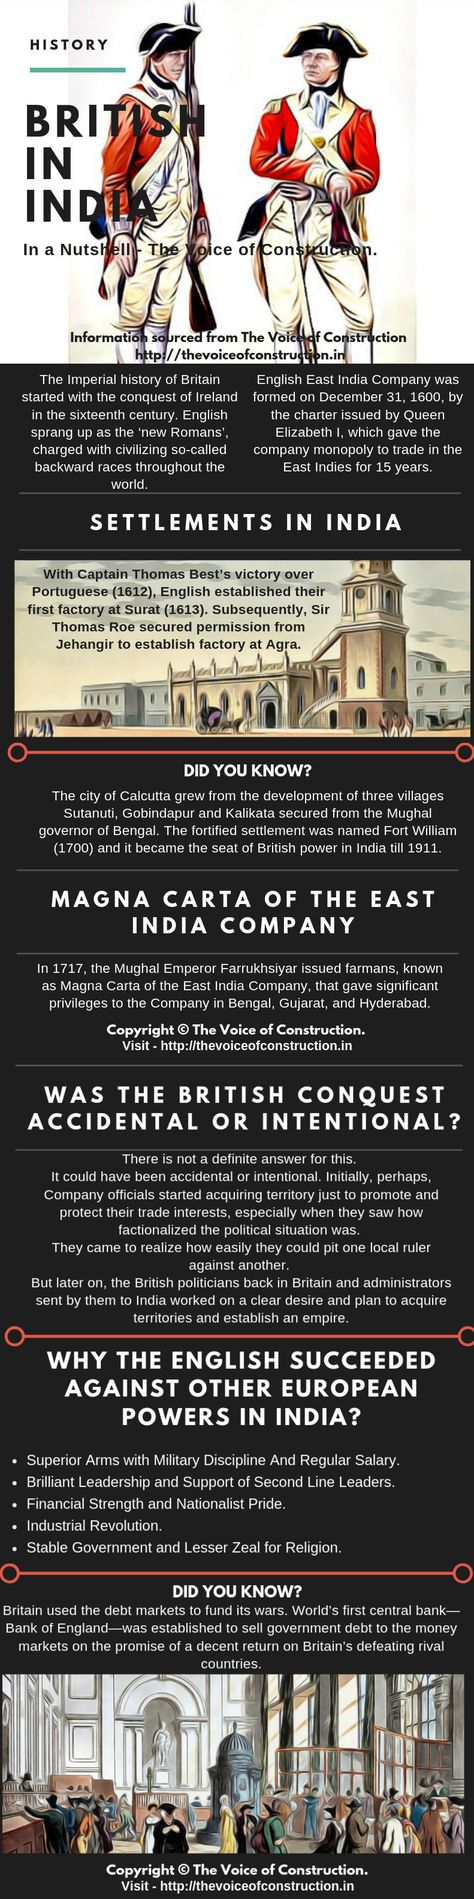 British in India- In a Nutshell